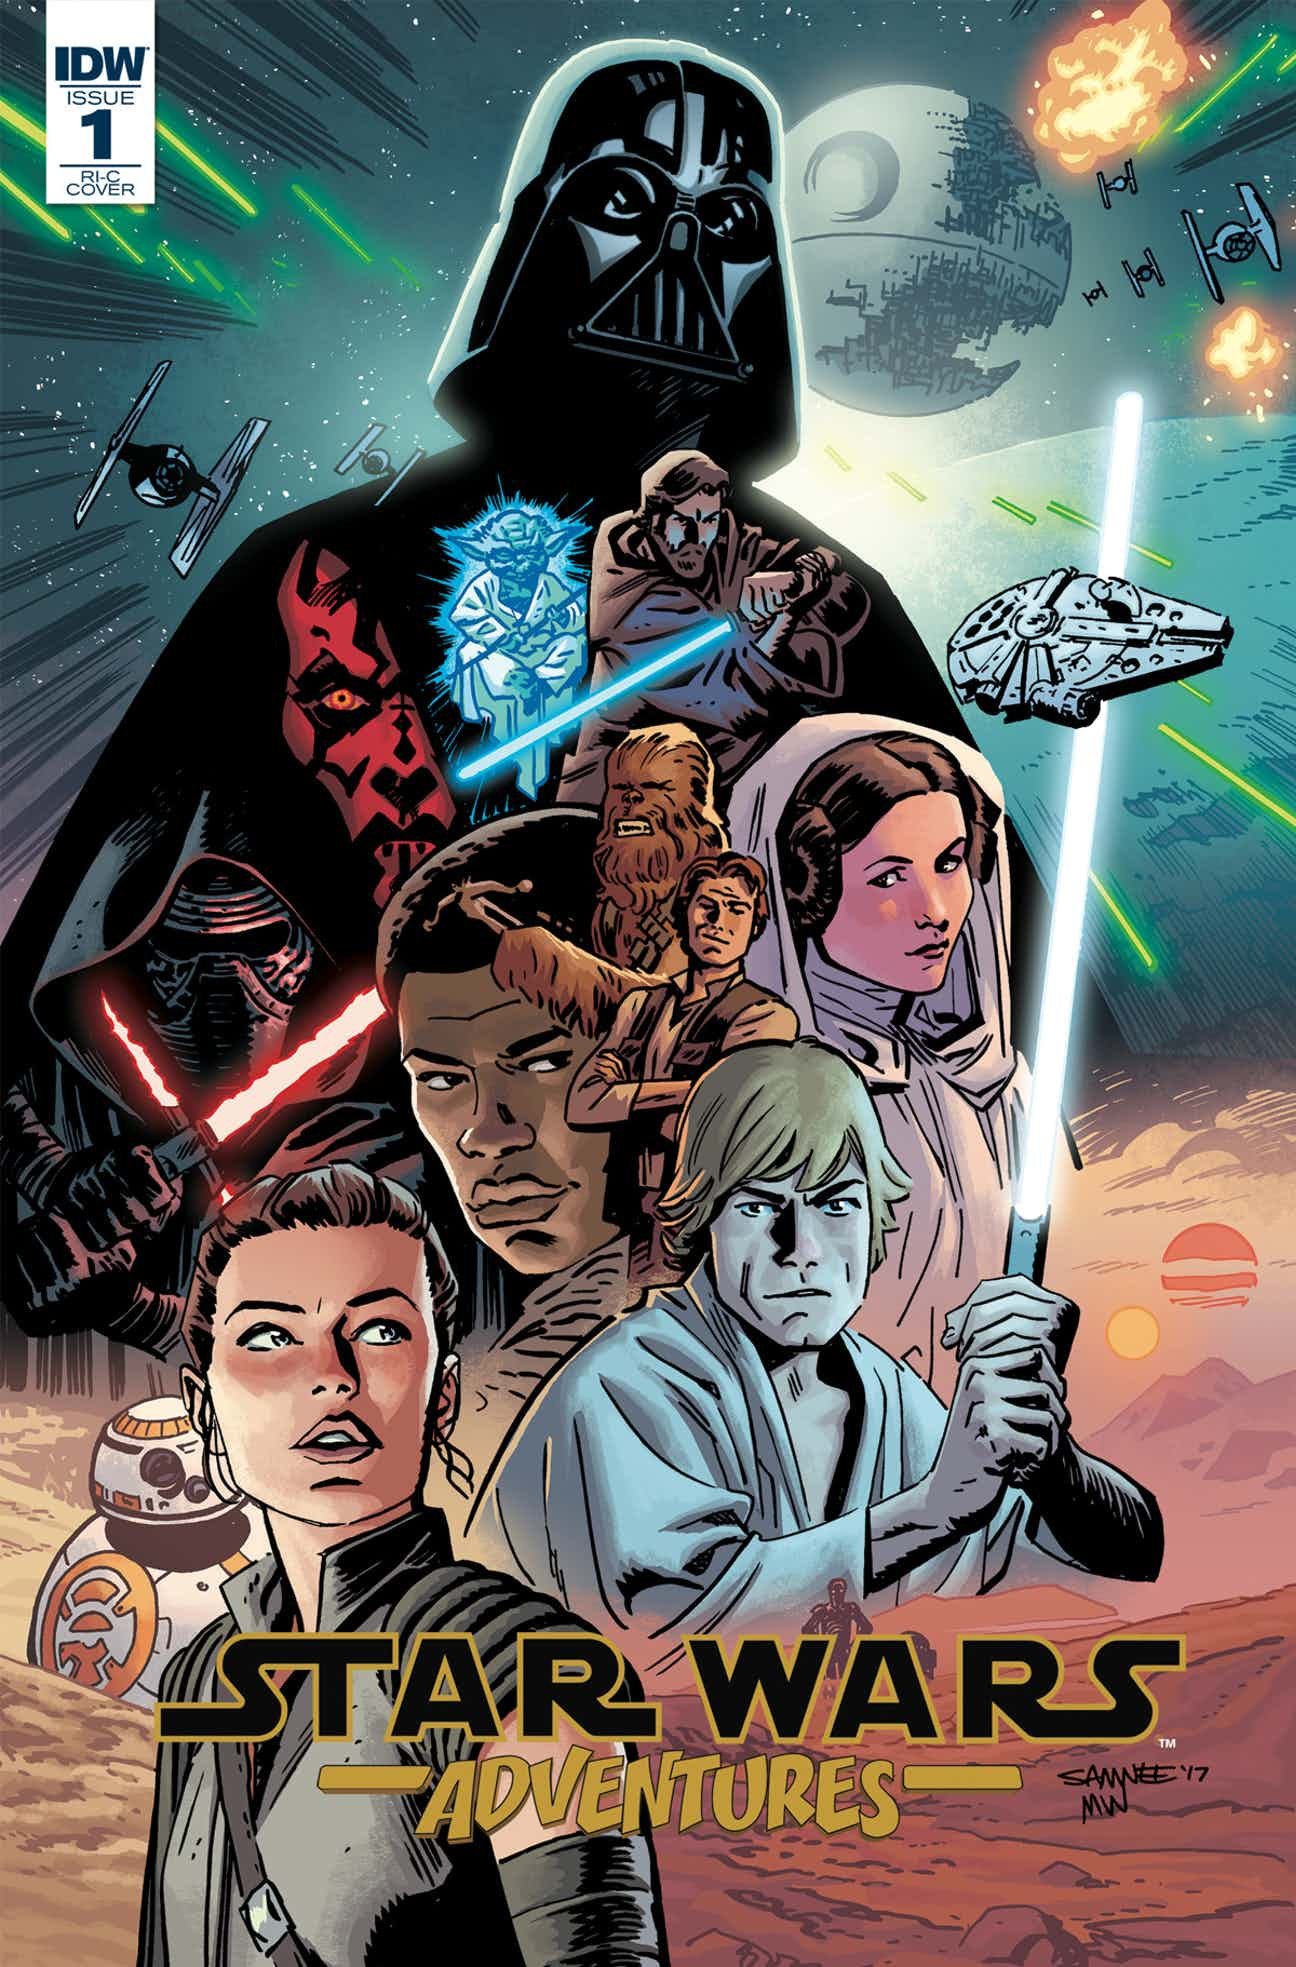 Star Wars Adventures 1 Preview Variant Cover